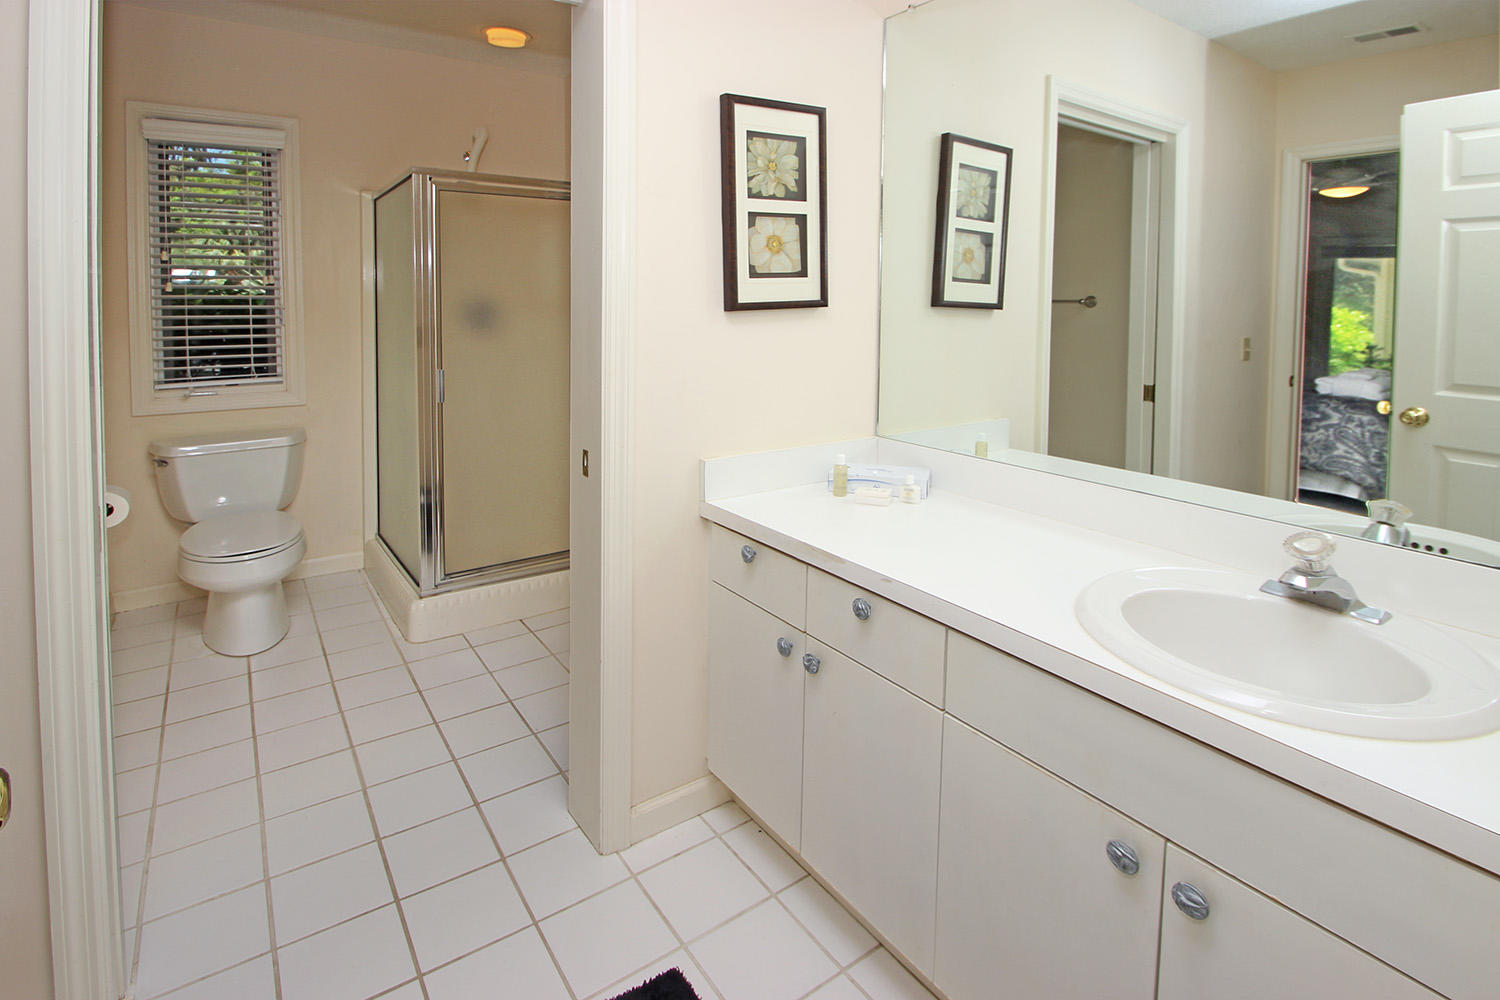 Shared bath for queen bedrooms two and three